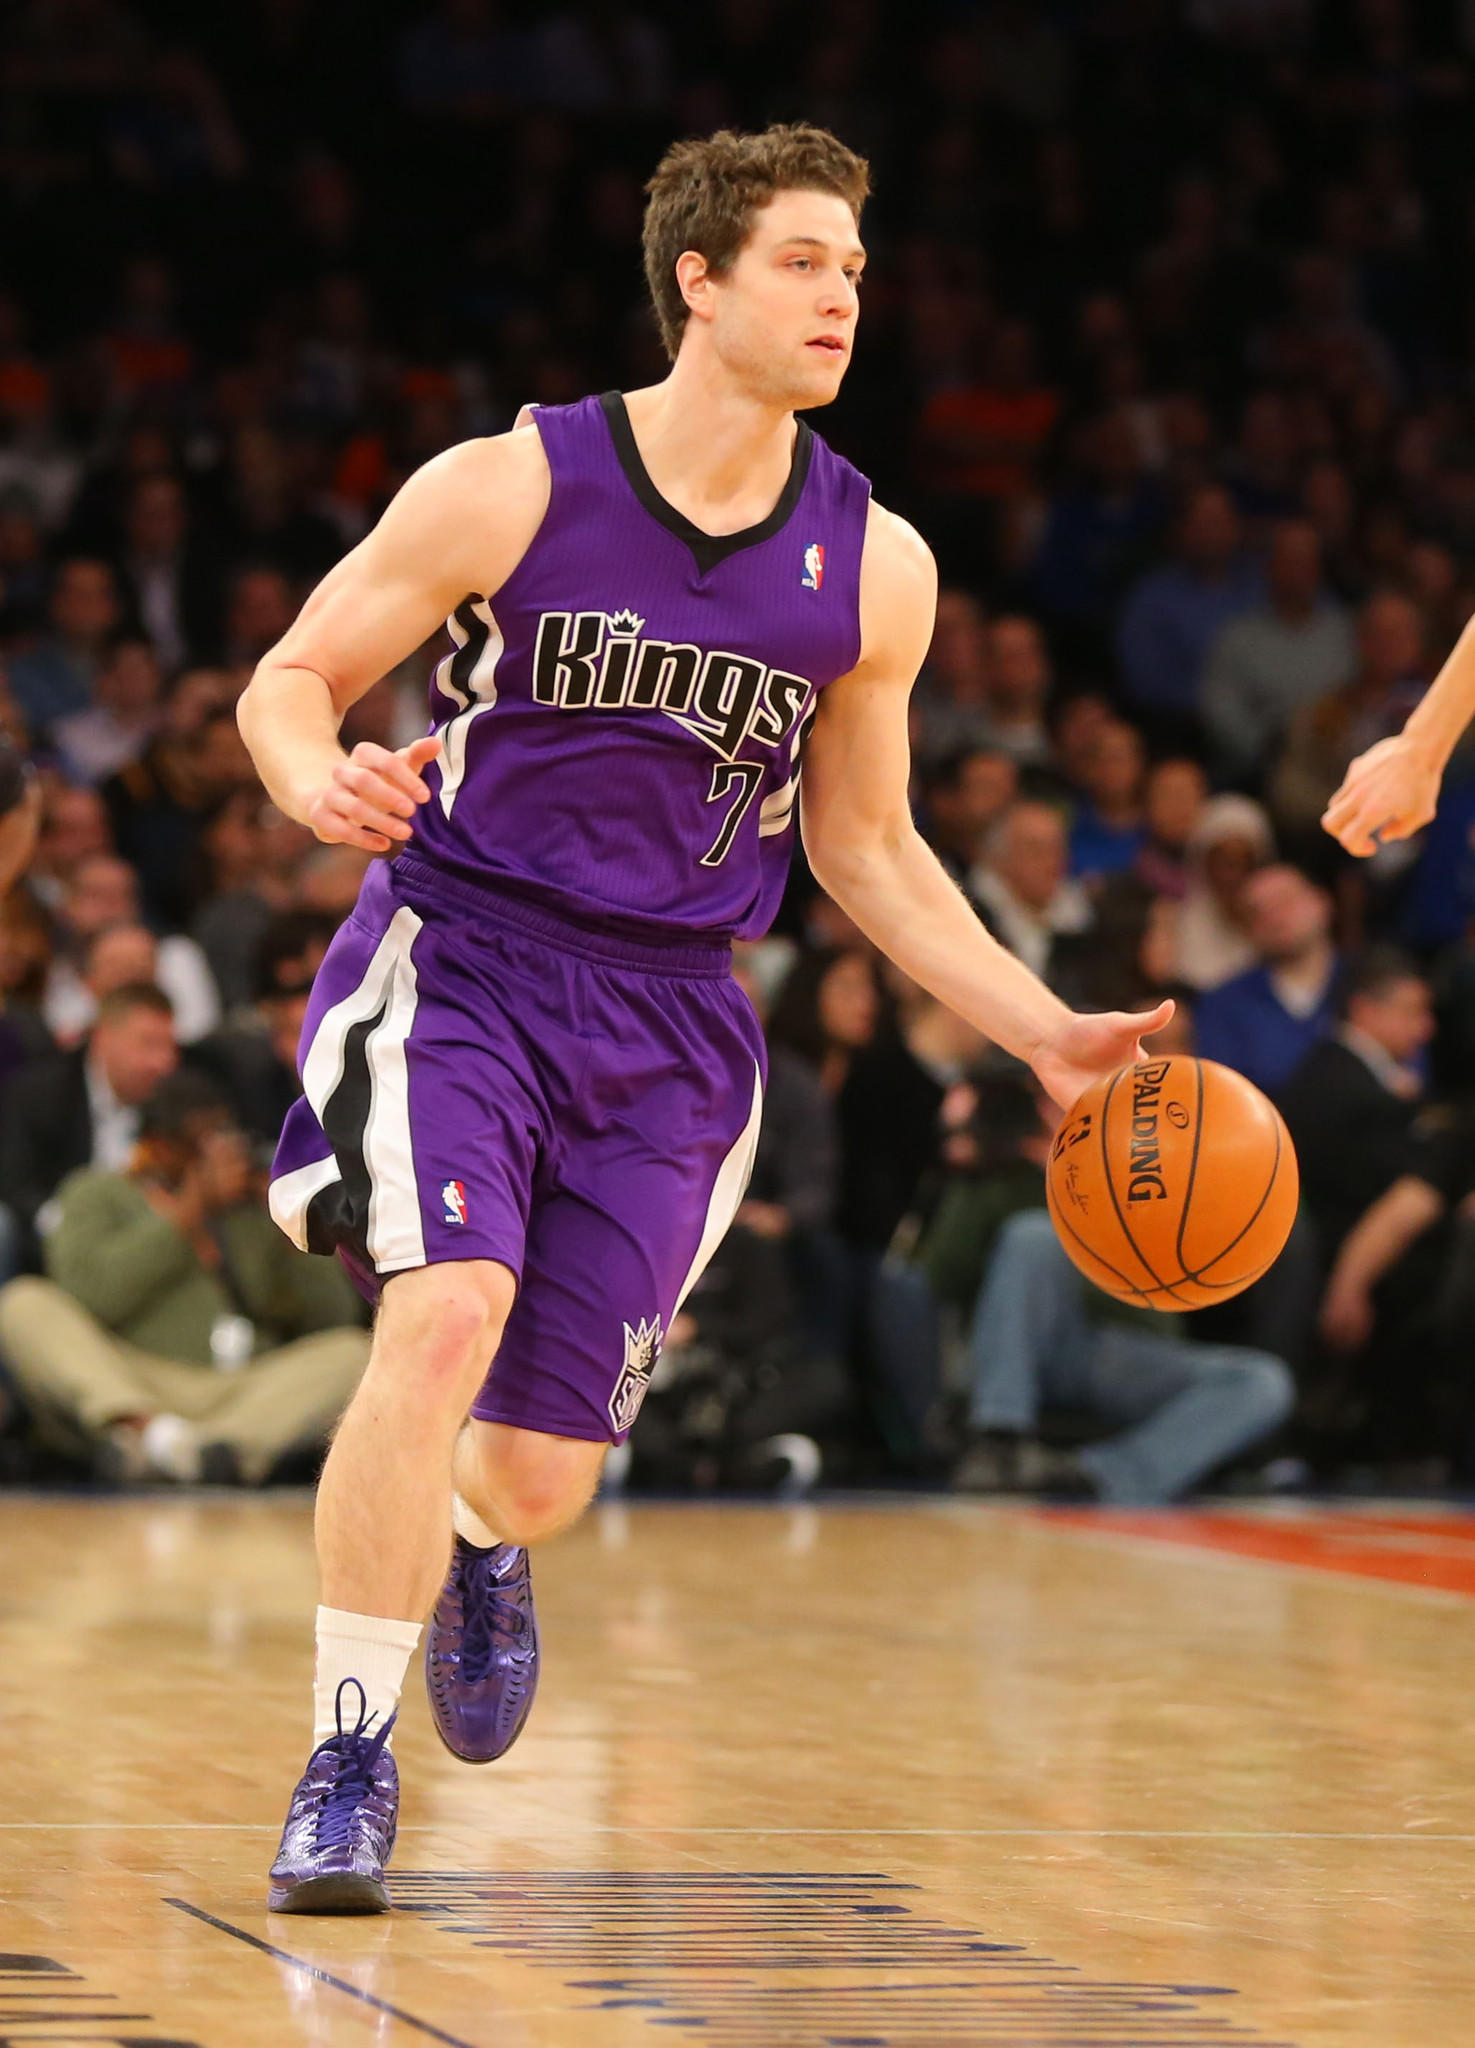 Kings point guard Jimmer Fredette brings the ball up court during the first half against the Knicks at Madison Square Garden.